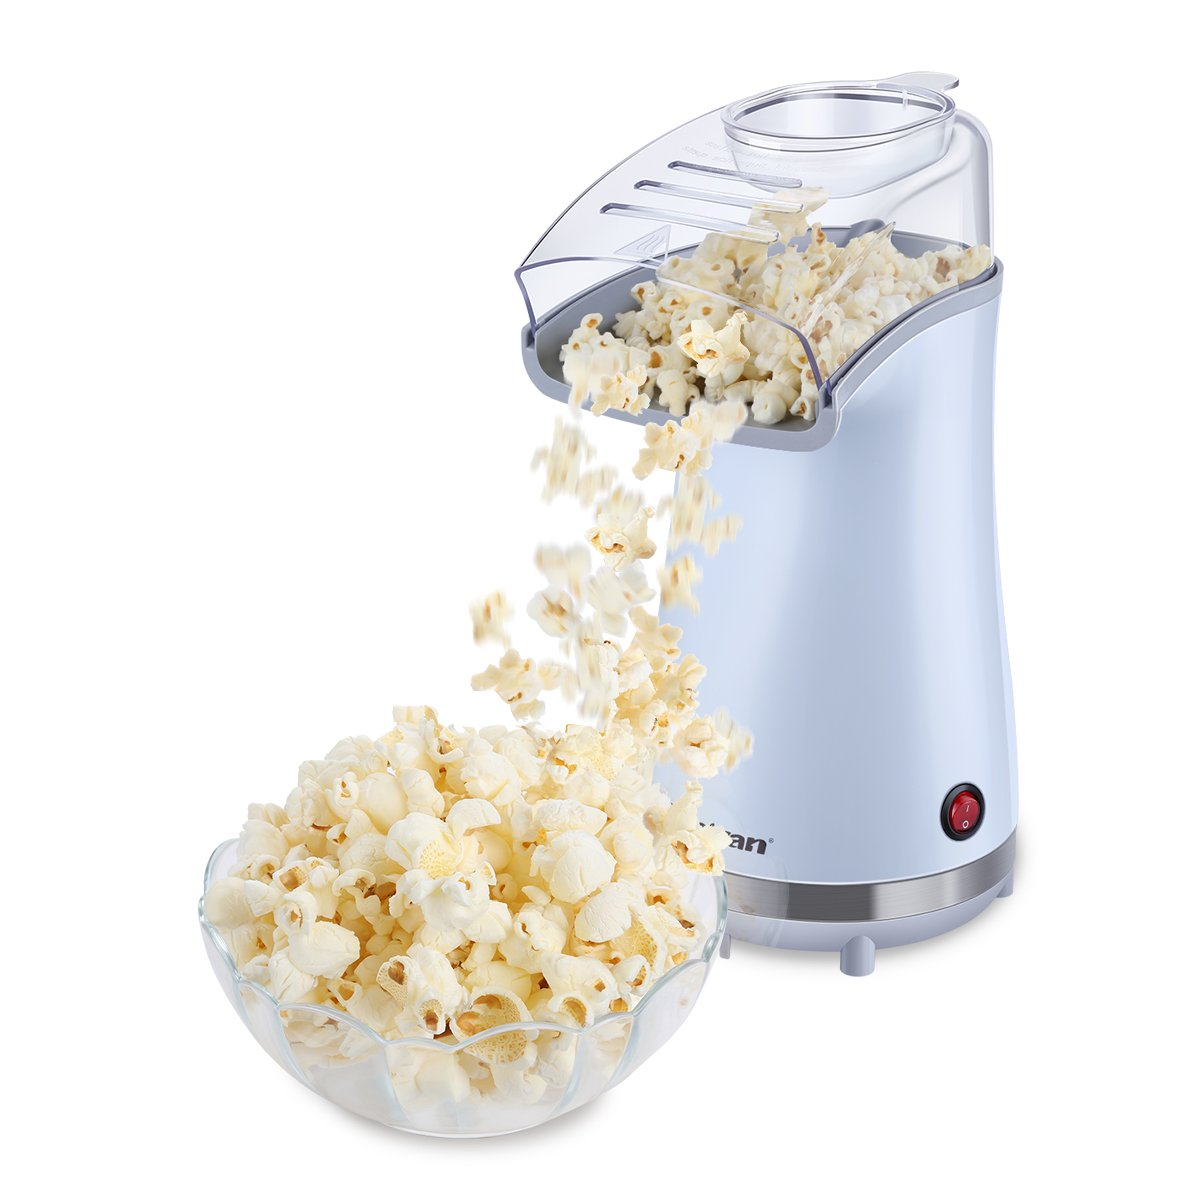 Excelvan Hot Air Popcorn Popper Electric Machine Maker 16 Cups of Popcorn, with Measuring Cup and Removable Lid, White